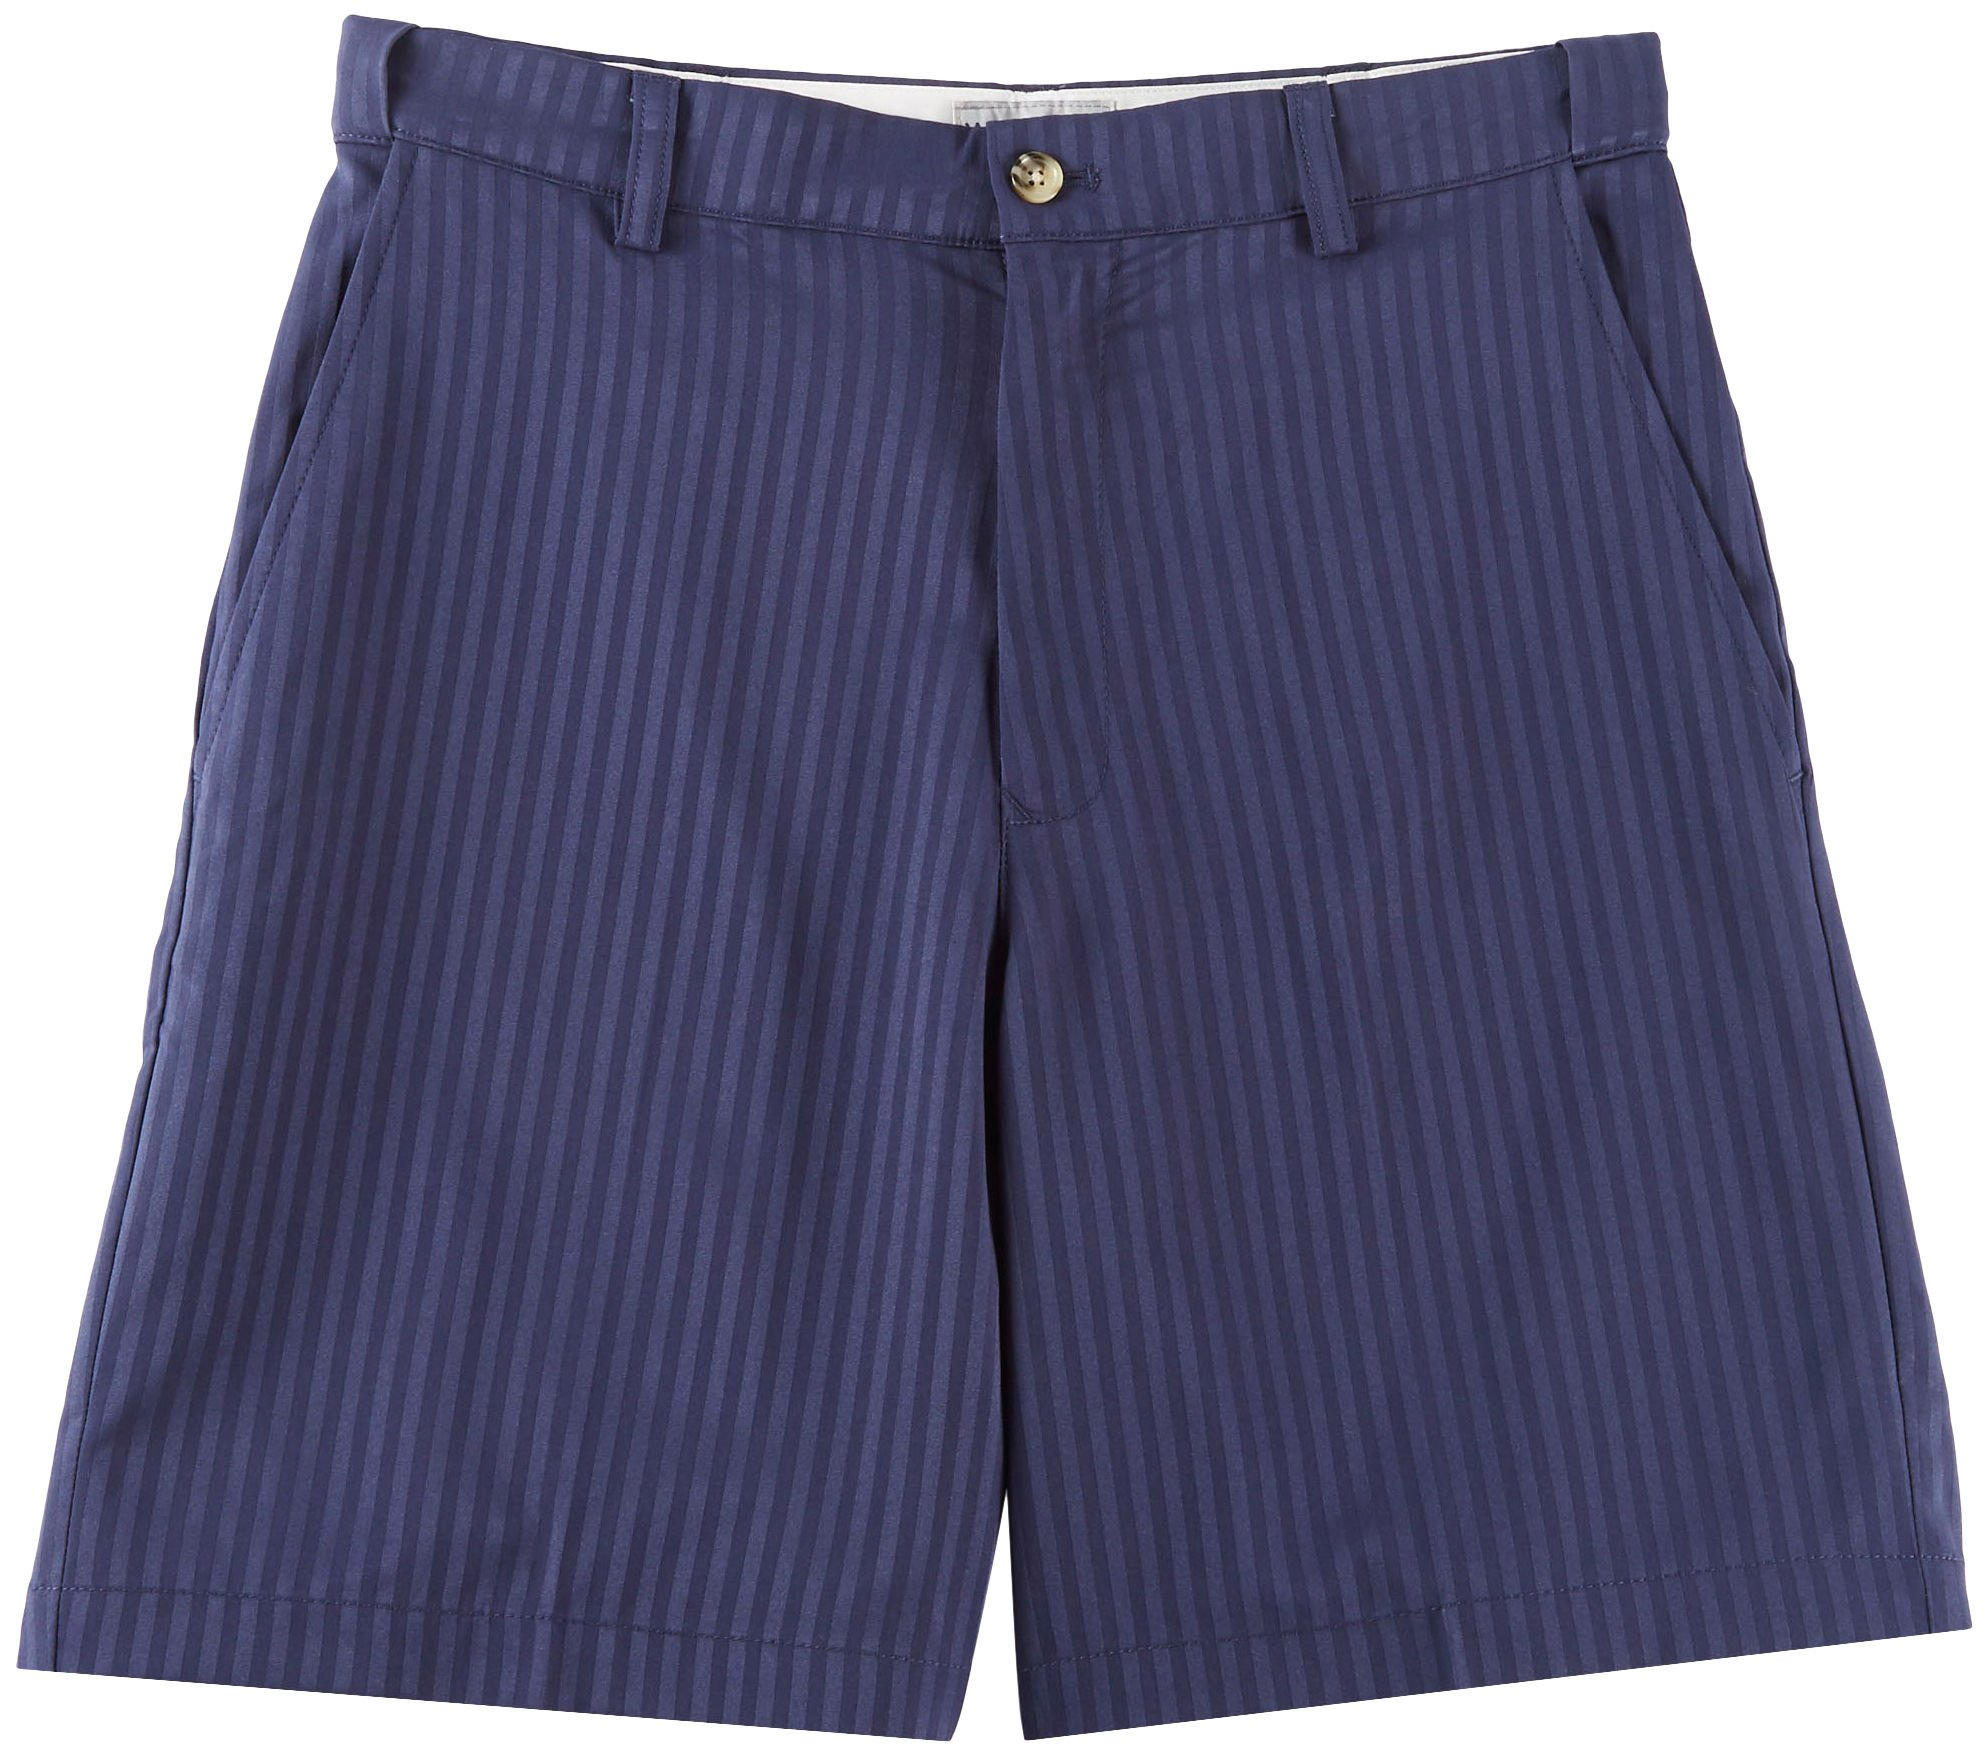 Windham Pointe Mens Stripe Flat Front Shorts 30W Peacoat Blue